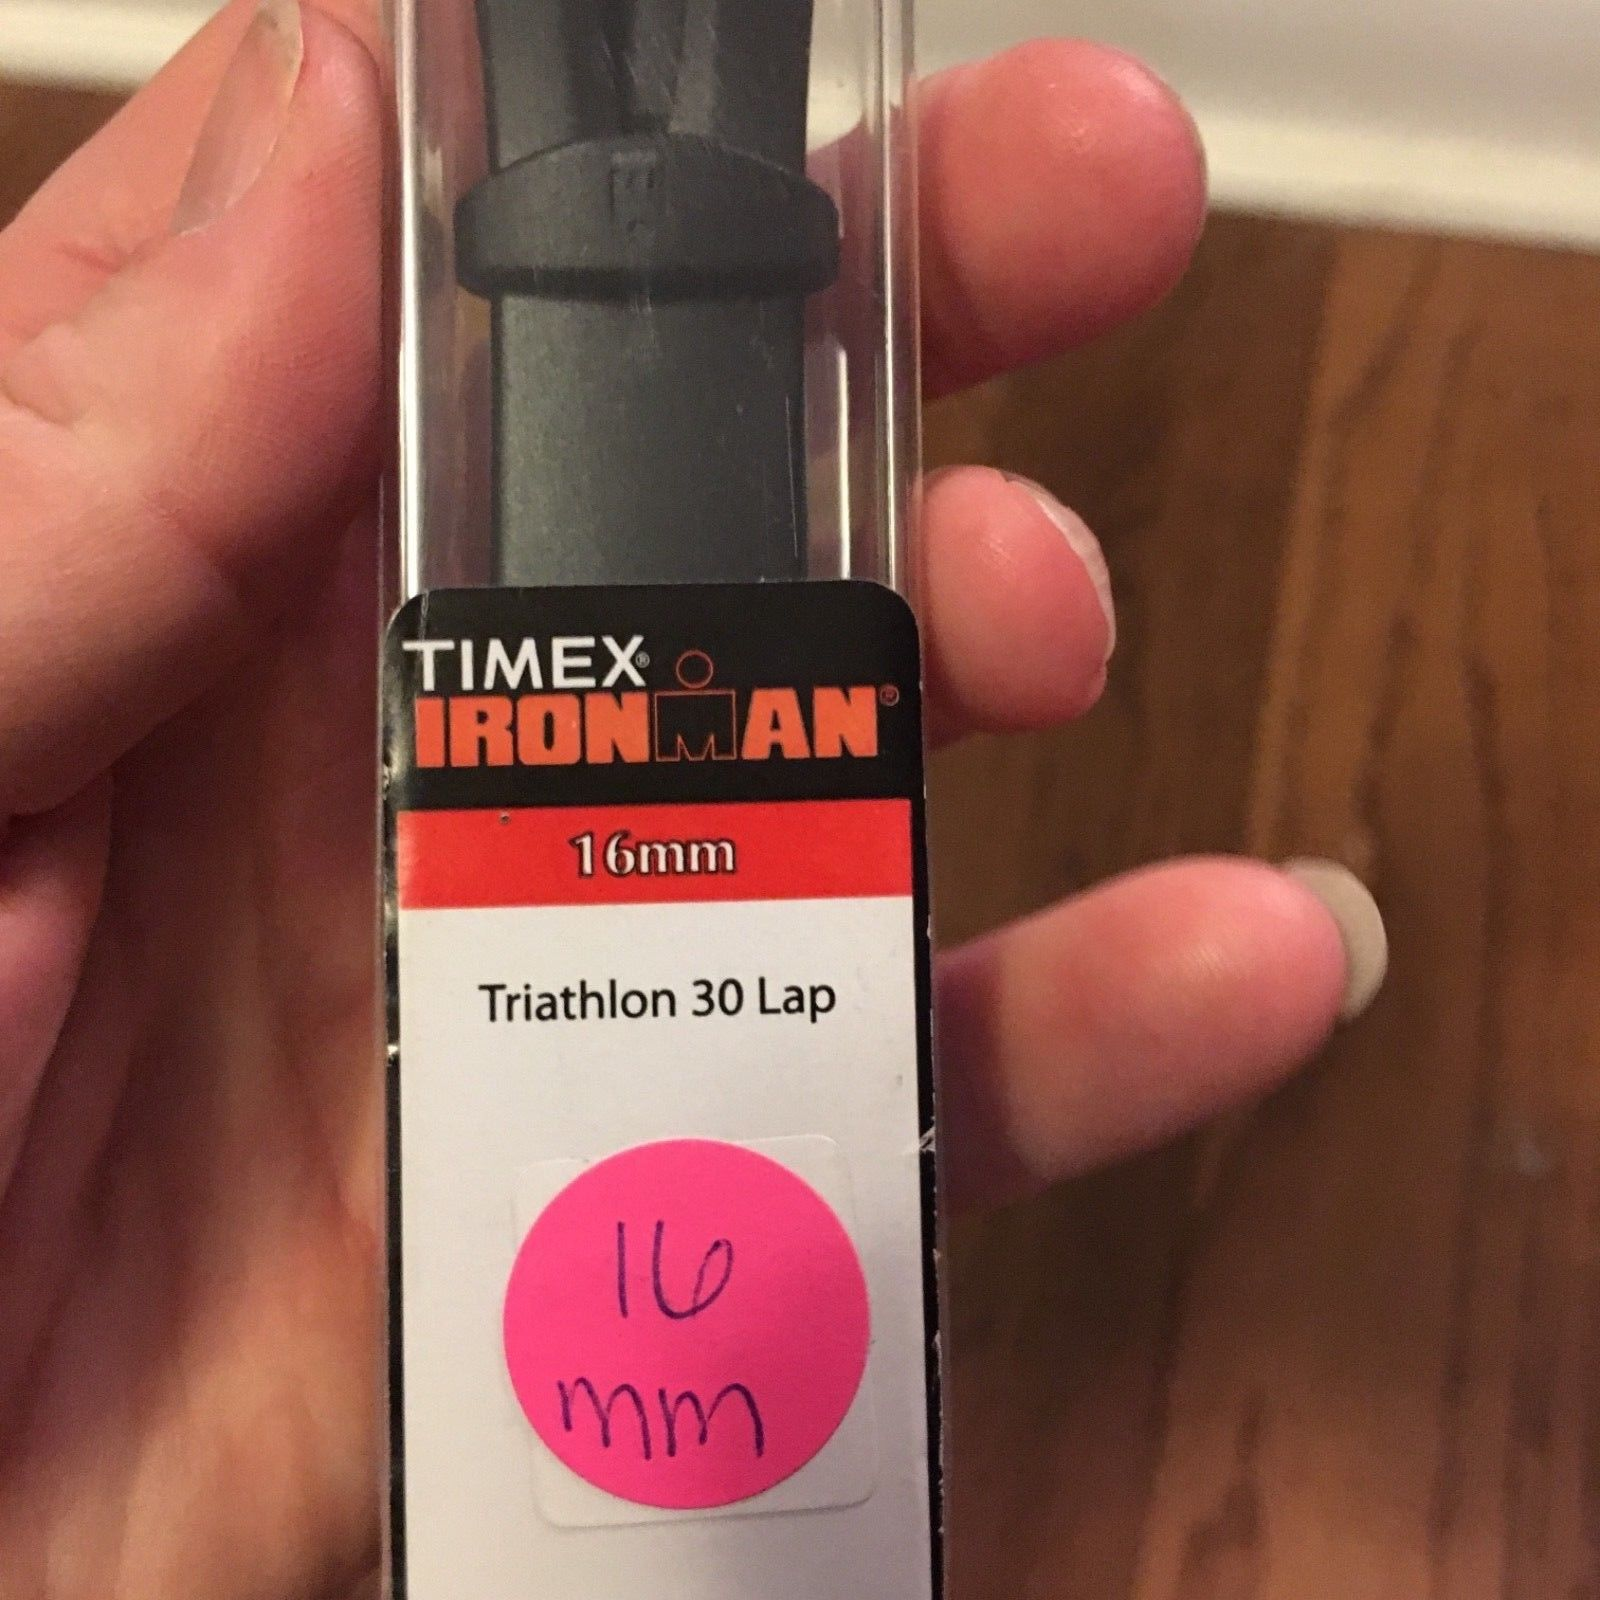 NIB 16mm Black Timex Ironman Triathlon 30 Lap Watch Band